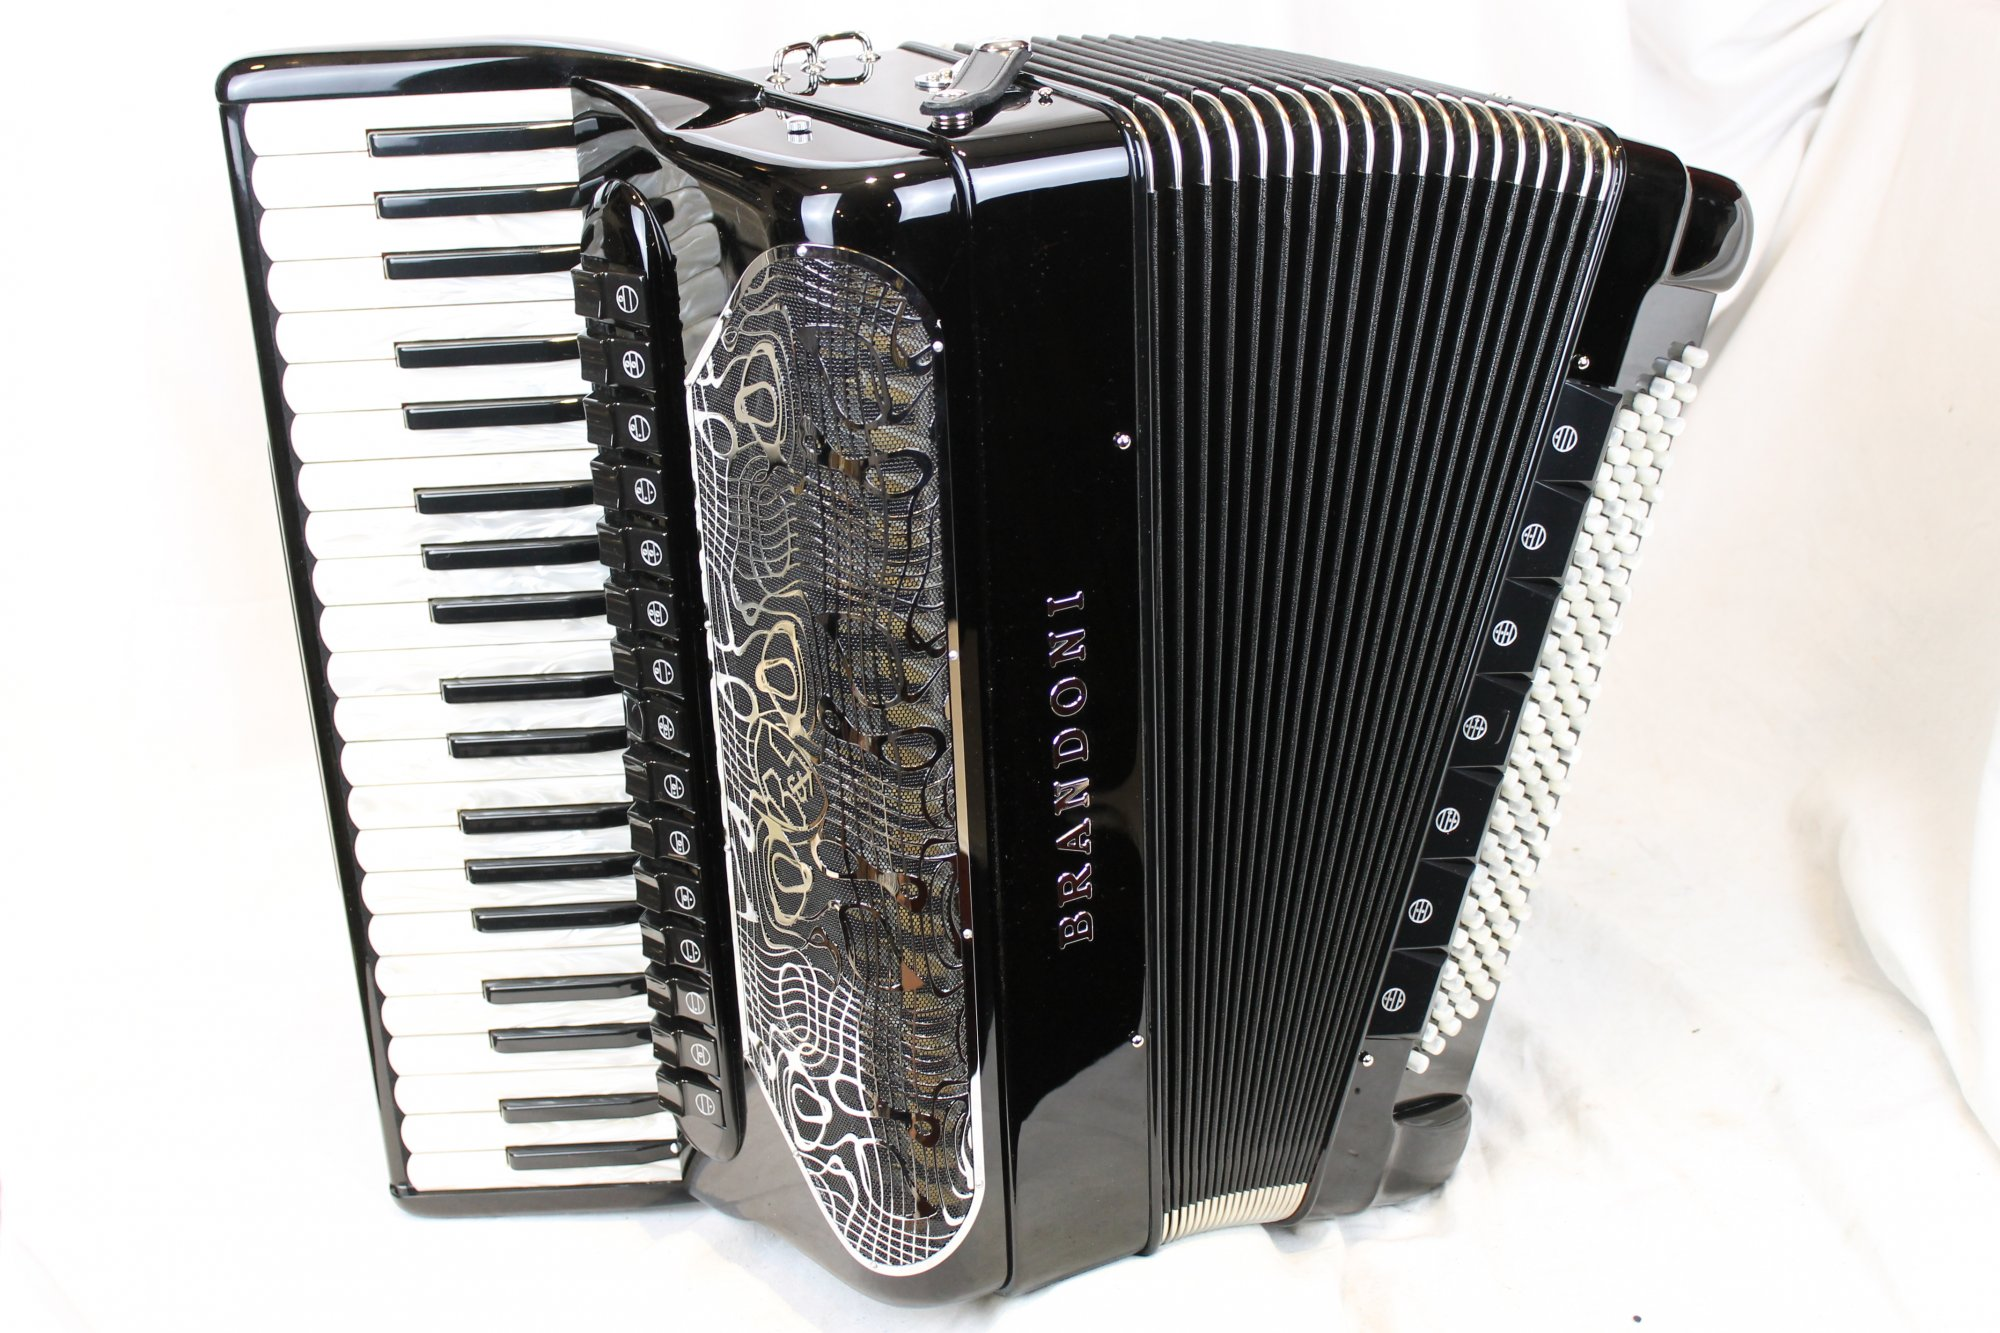 NEW Black Brandoni 148C Infinity Piano Accordion LMMH 41 120